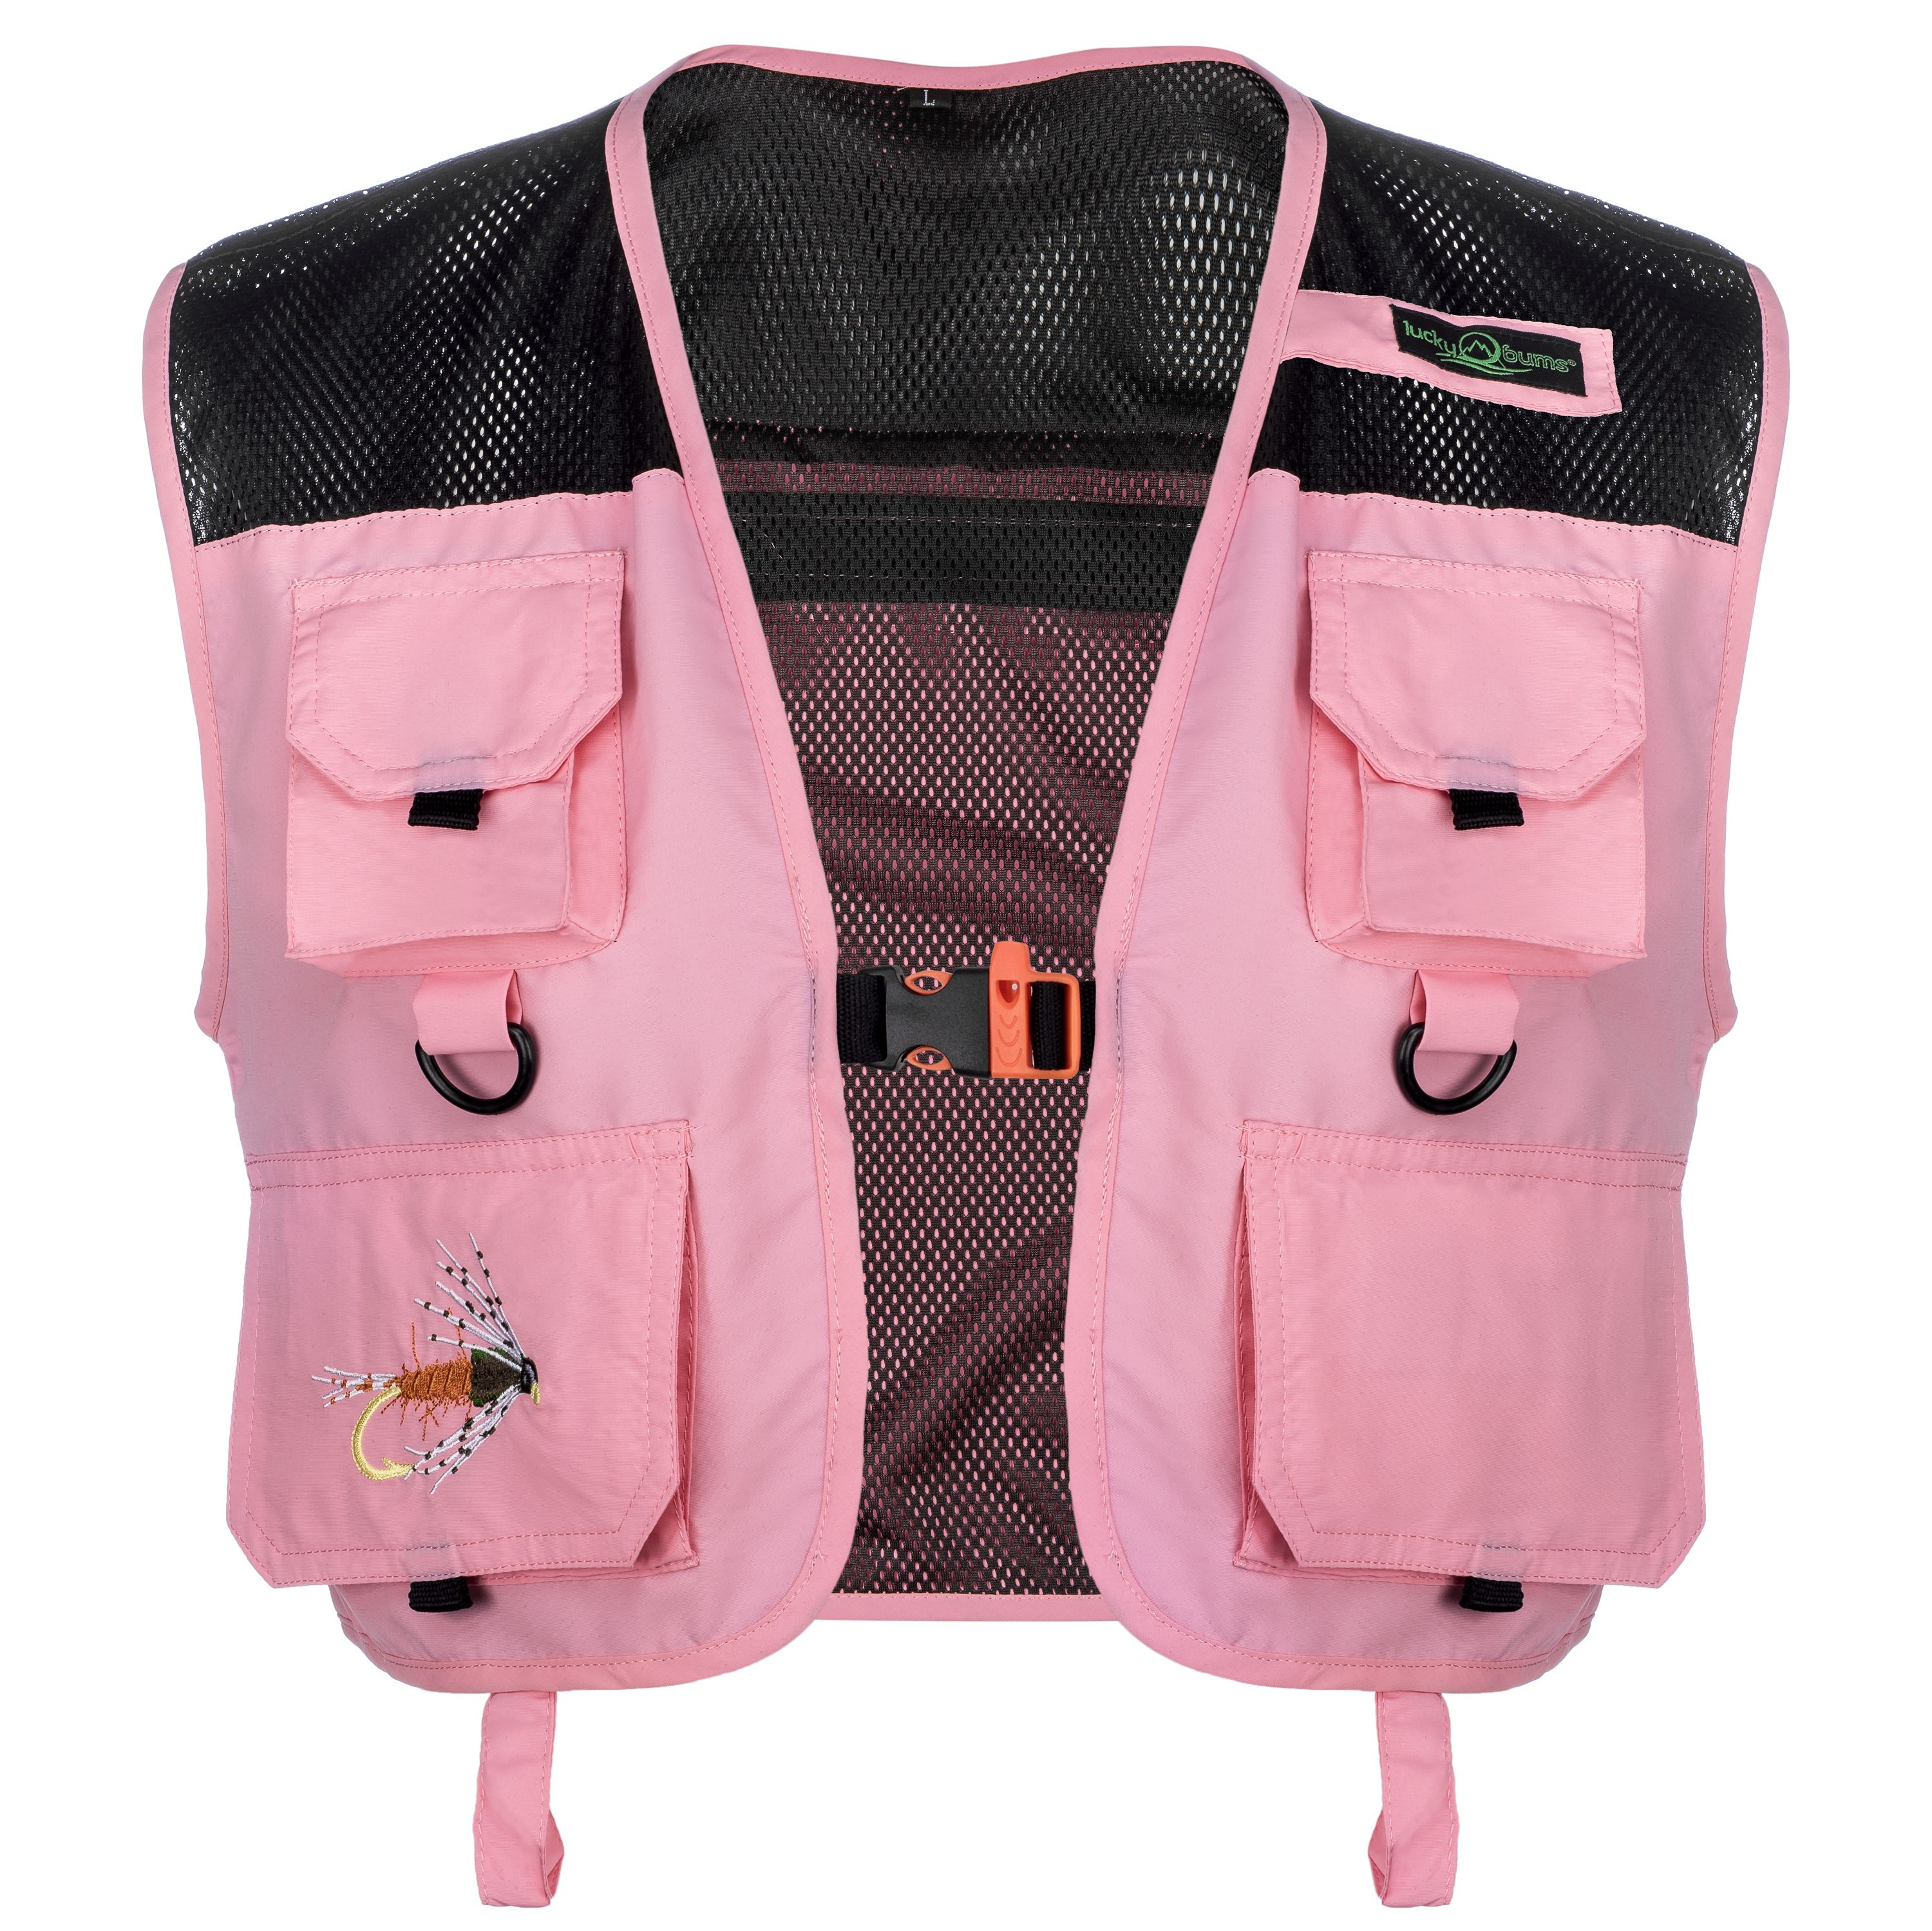 Lucky Bums Kid's Fishing and Outdoor Adventure Vest, Pink, Large